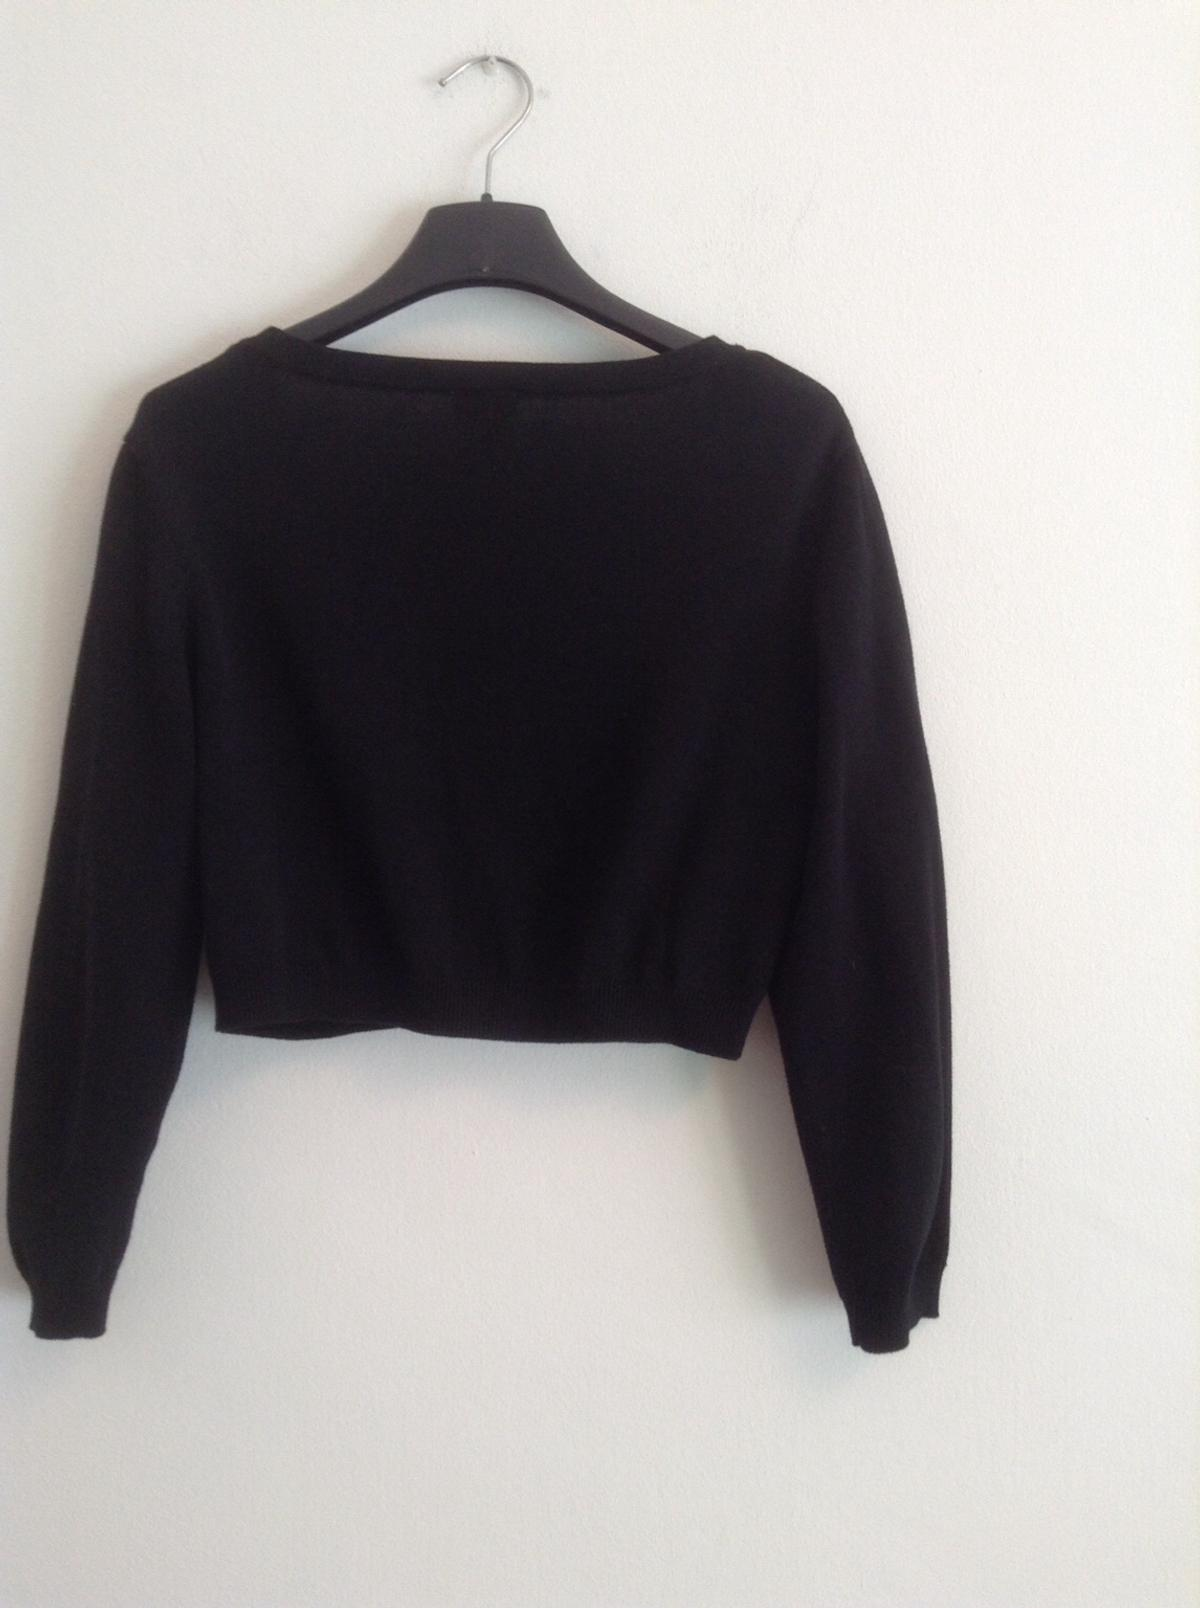 the latest 17eab 4a6a2 Cardigan corto H&M in 10037 Torino for €10.00 for sale - Shpock